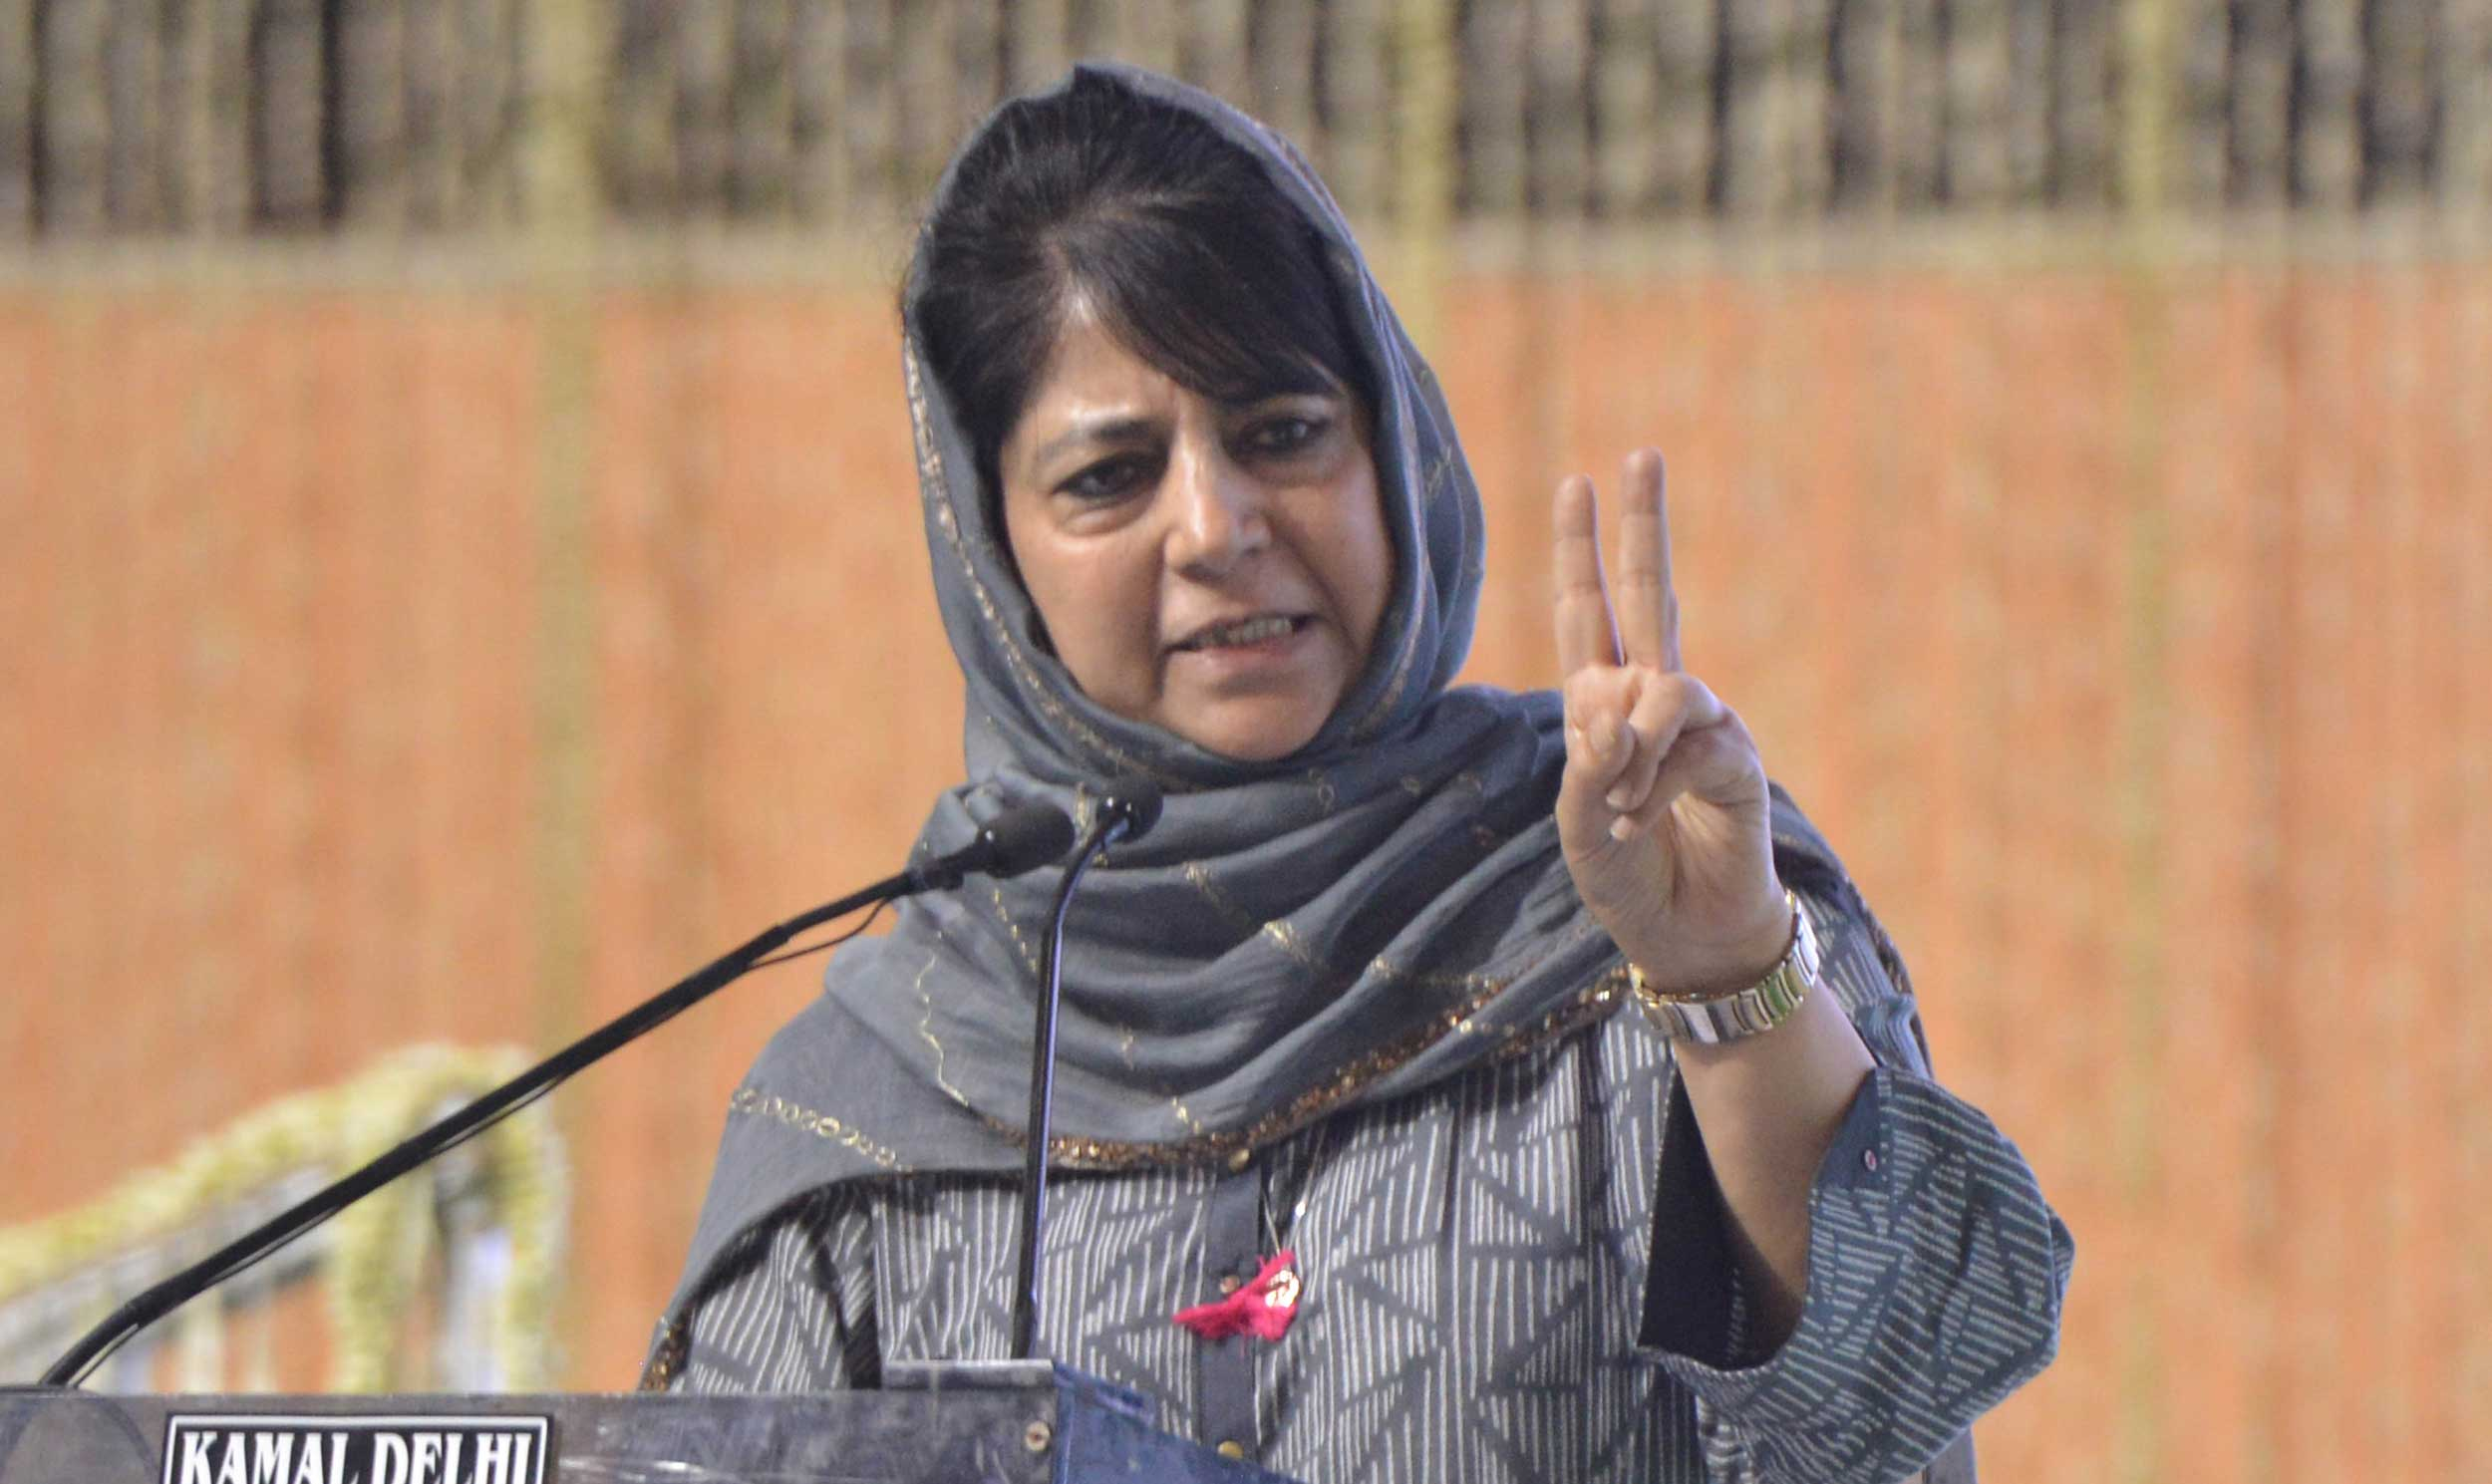 Anantnag elected Mehbooba Mufti in the 2014 Lok Sabha polls and was seen as a stronghold of her People's Democratic Party until it joined hands with the BJP to form the government in 2015.